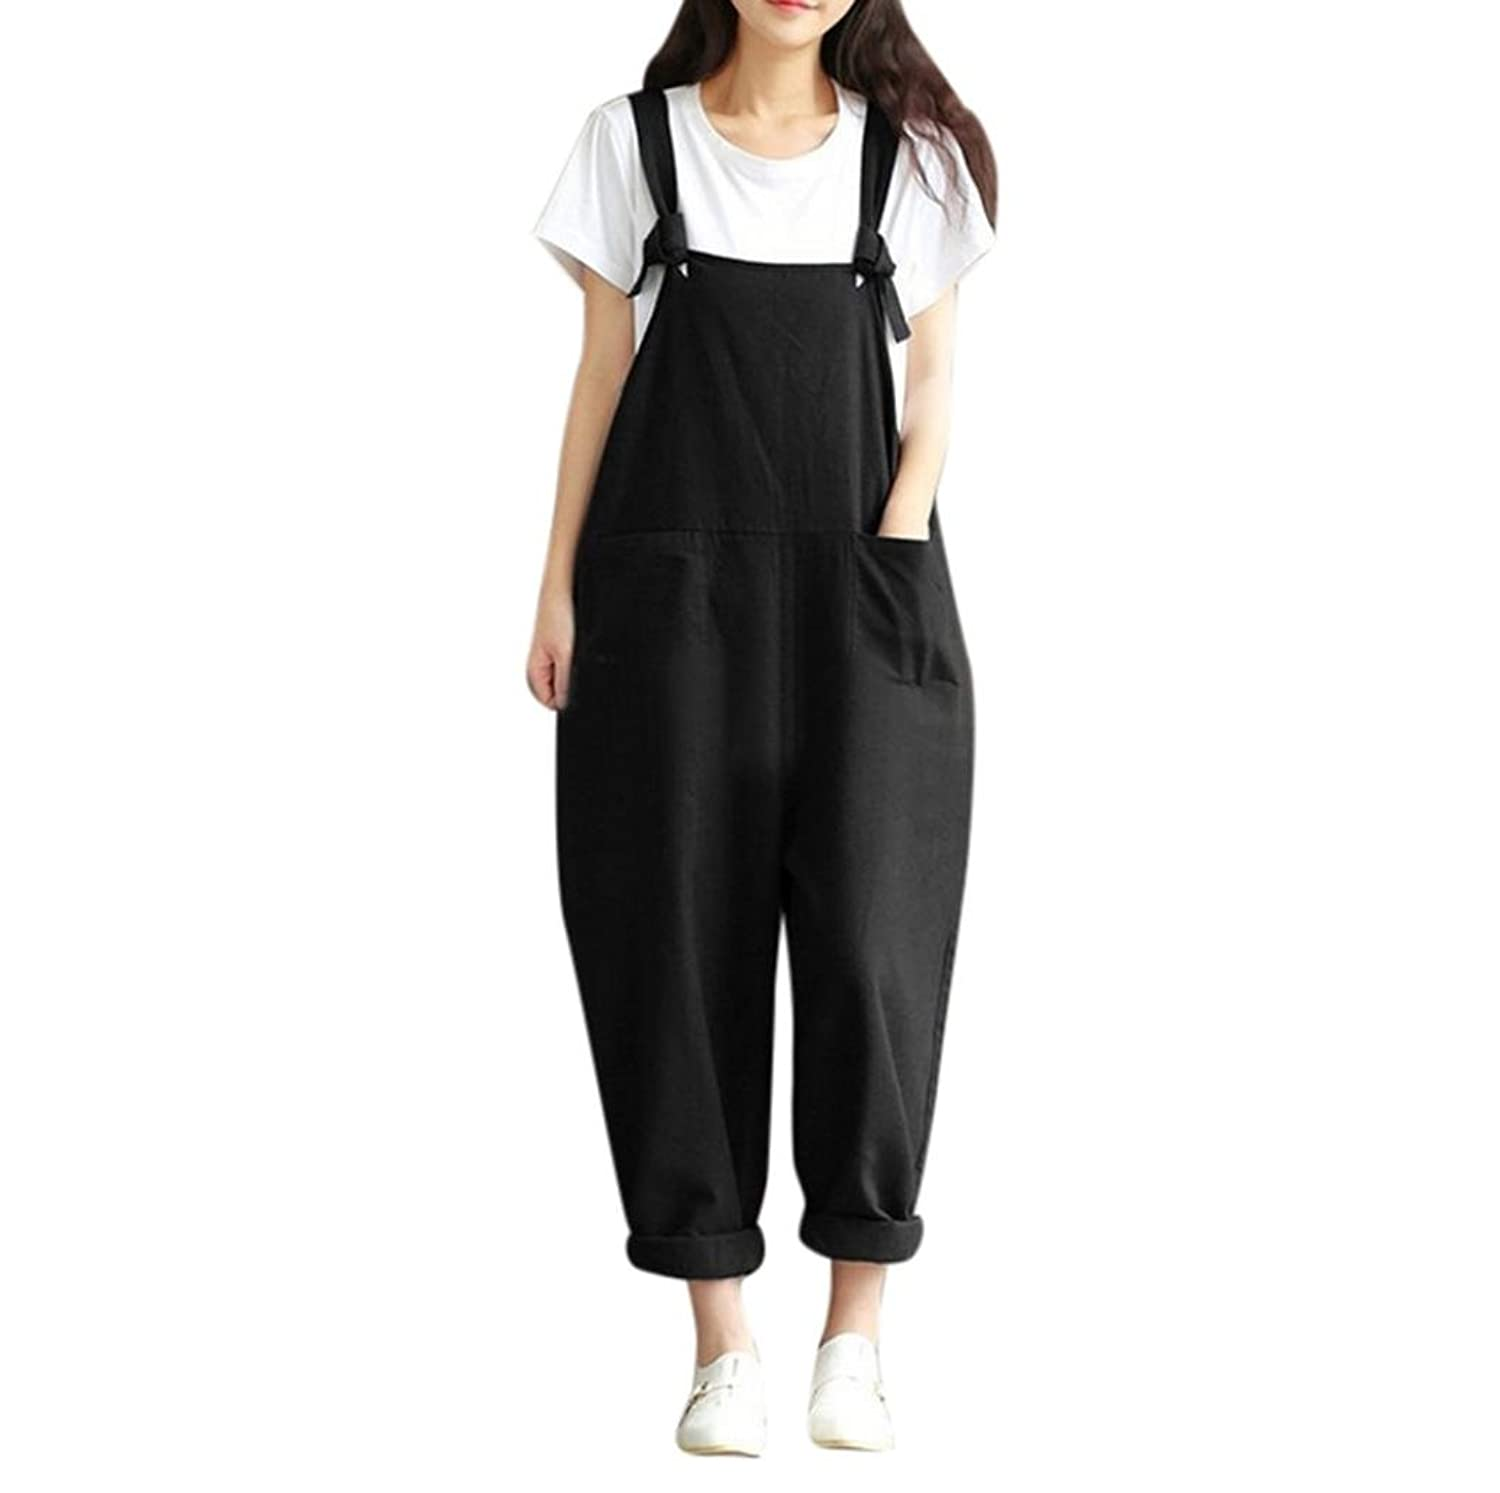 817e23e0550 Kingko® Women s Retro Loose Fit Casual Plus Size Baggy Overall Jumpsuit  Playsuit Trousers Wide Leg Pants Dungarees  Amazon.co.uk  Clothing